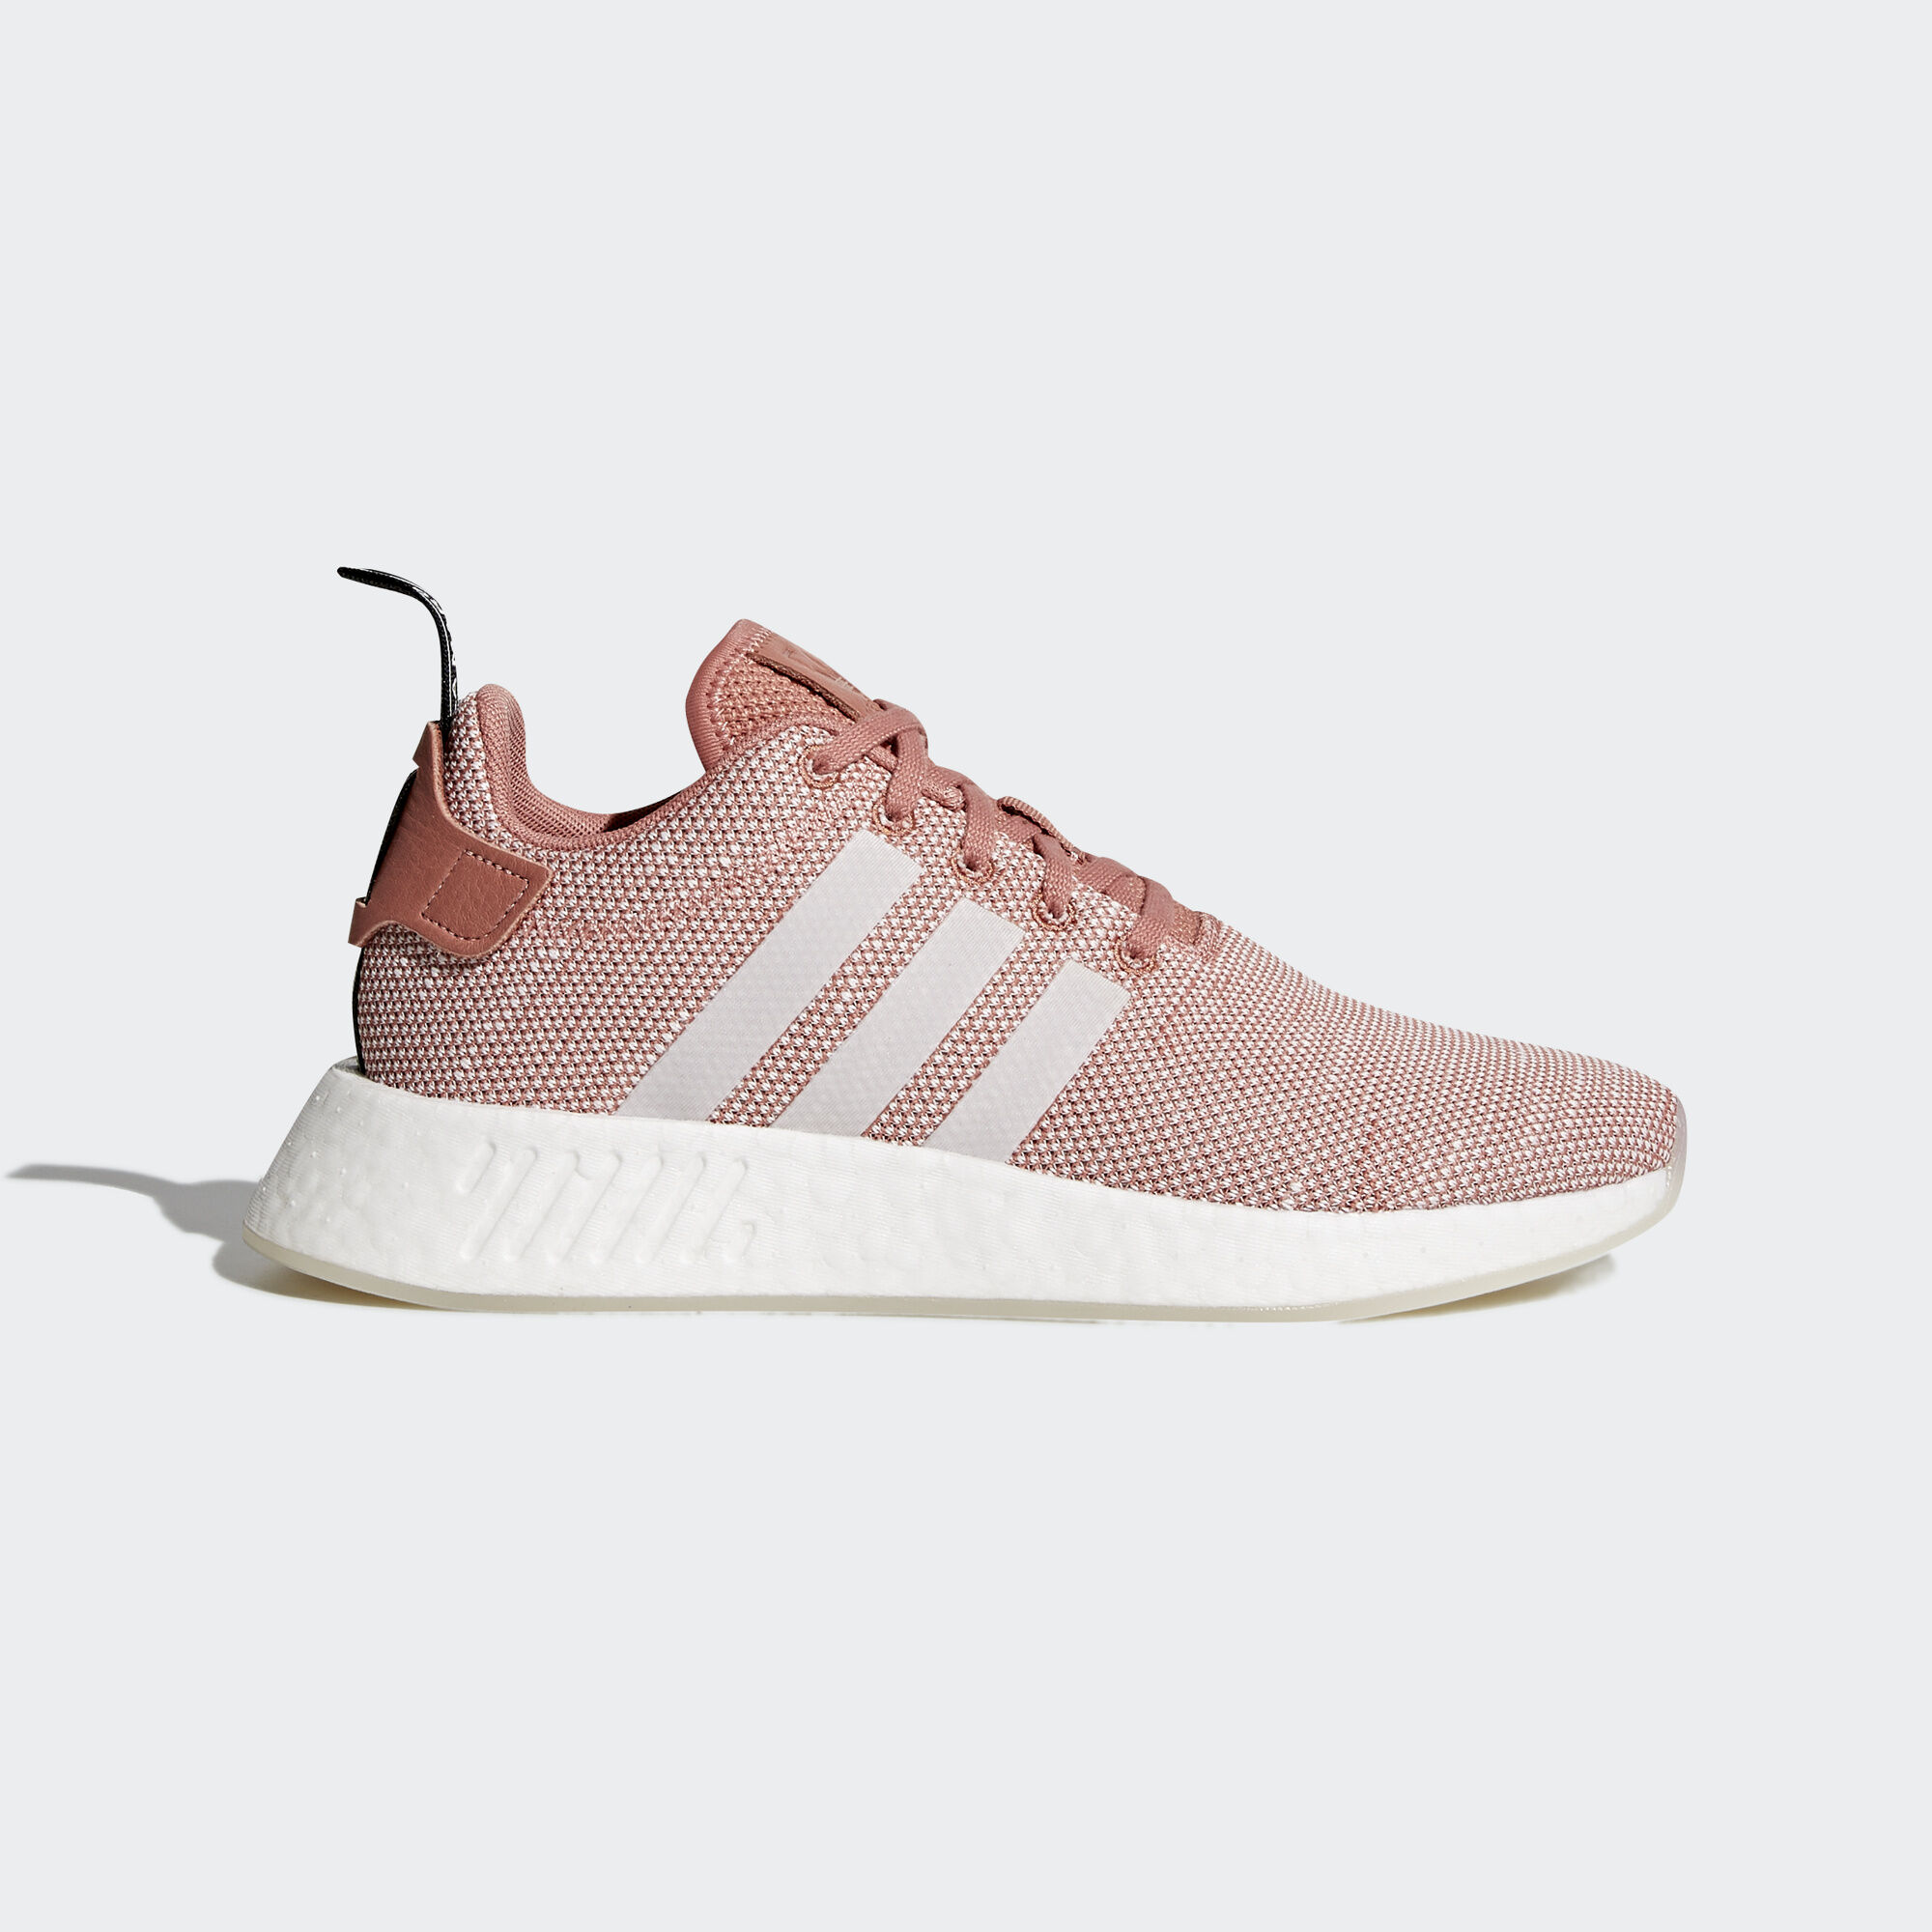 Adidas Nmd R2 Shoes Pink Adidas Europe Africa